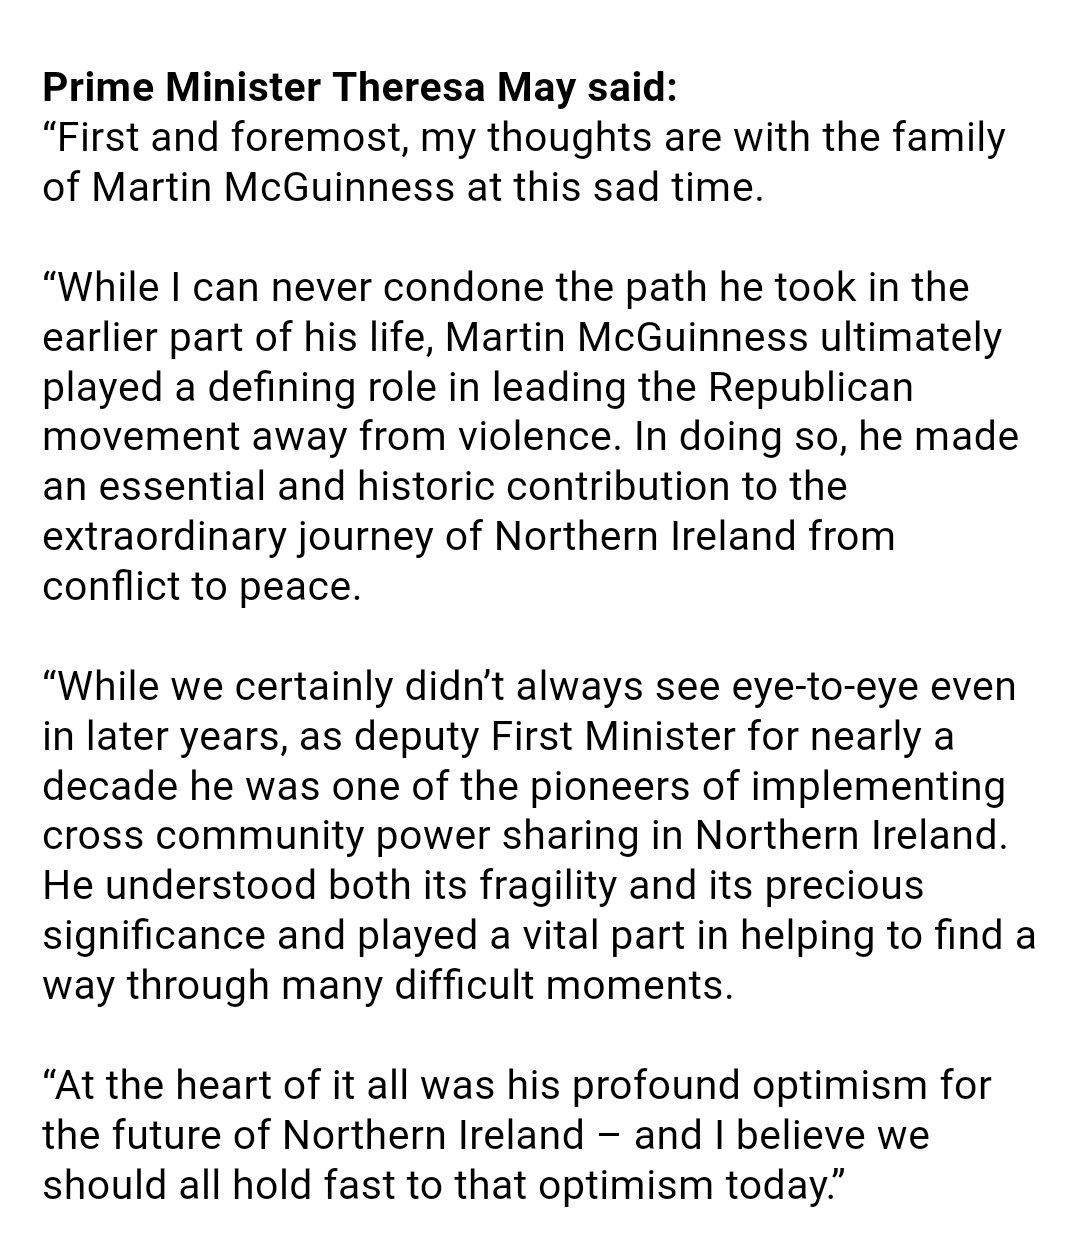 Very well judged statement from PM on McGuinness https://t.co/oYVD1gjCWM